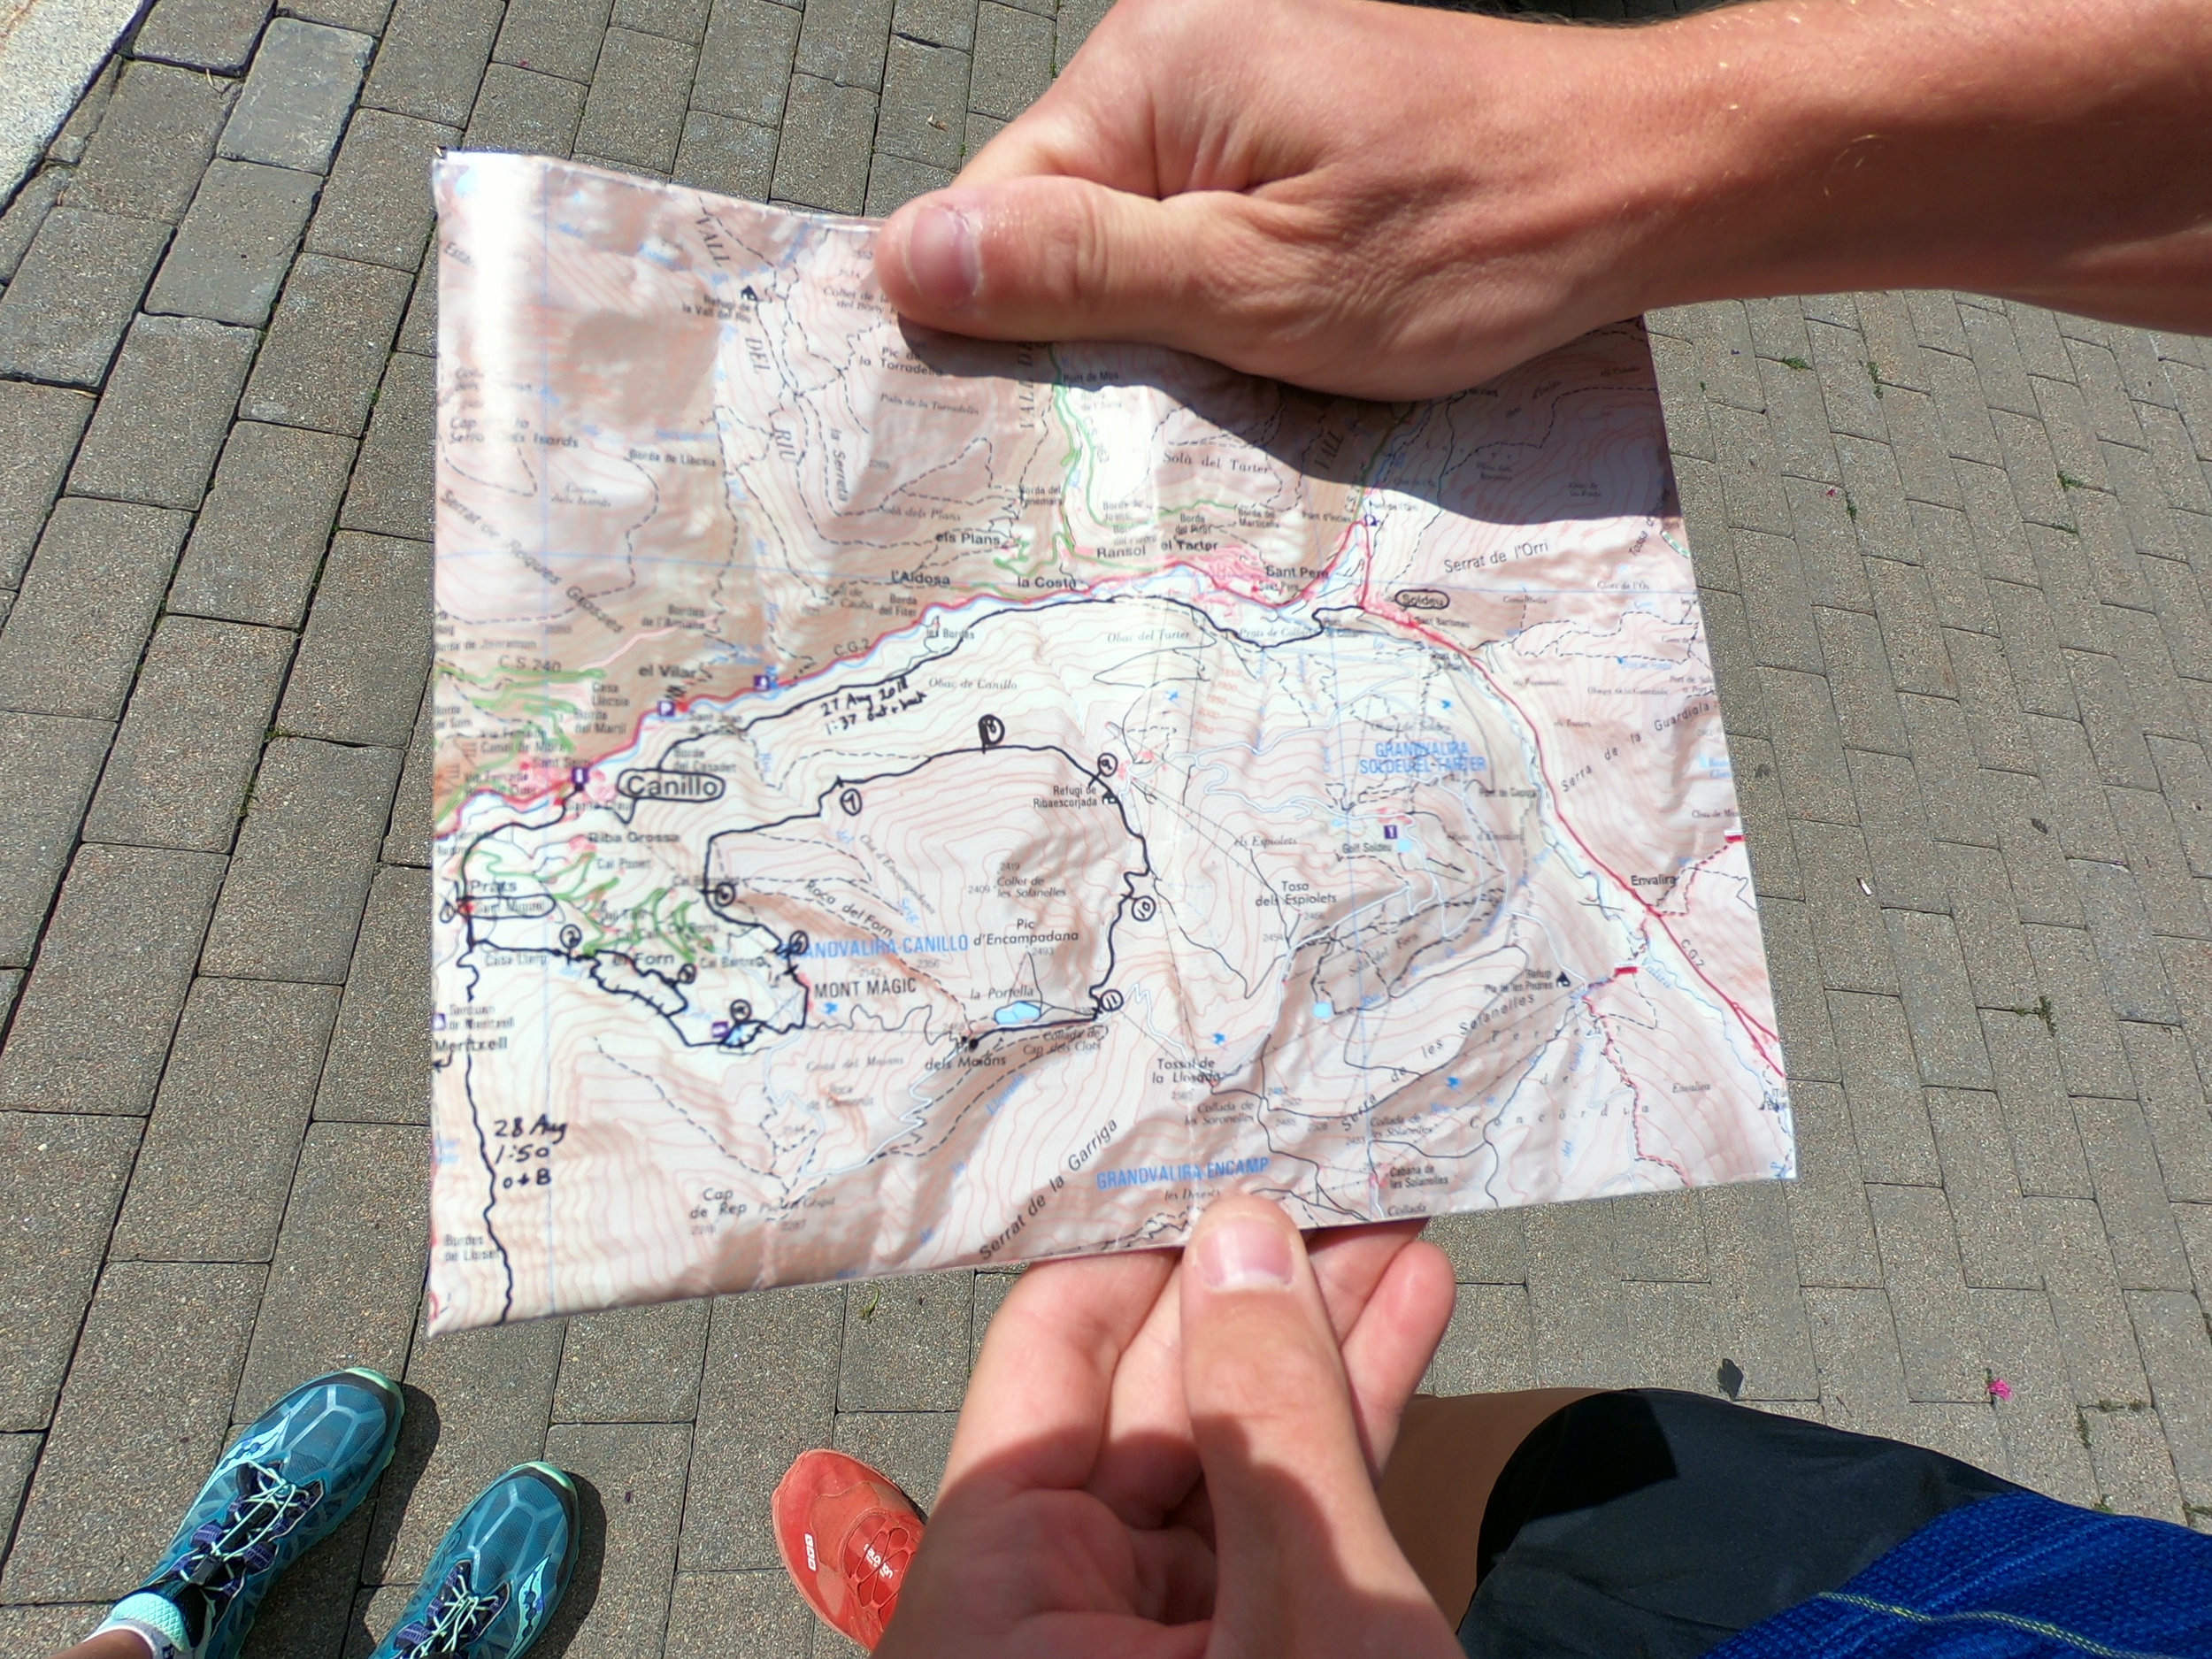 This is the topographical map (scale 1:40,000, which was not ideal) I used. In the future, I plan to use a GPS track and/or mobile phone with data to determine exactly where the course went the first time. Before the race course was officially marked, there were various sections that were not straightforward and without a GPS, would be extremely difficult to determine correctly.